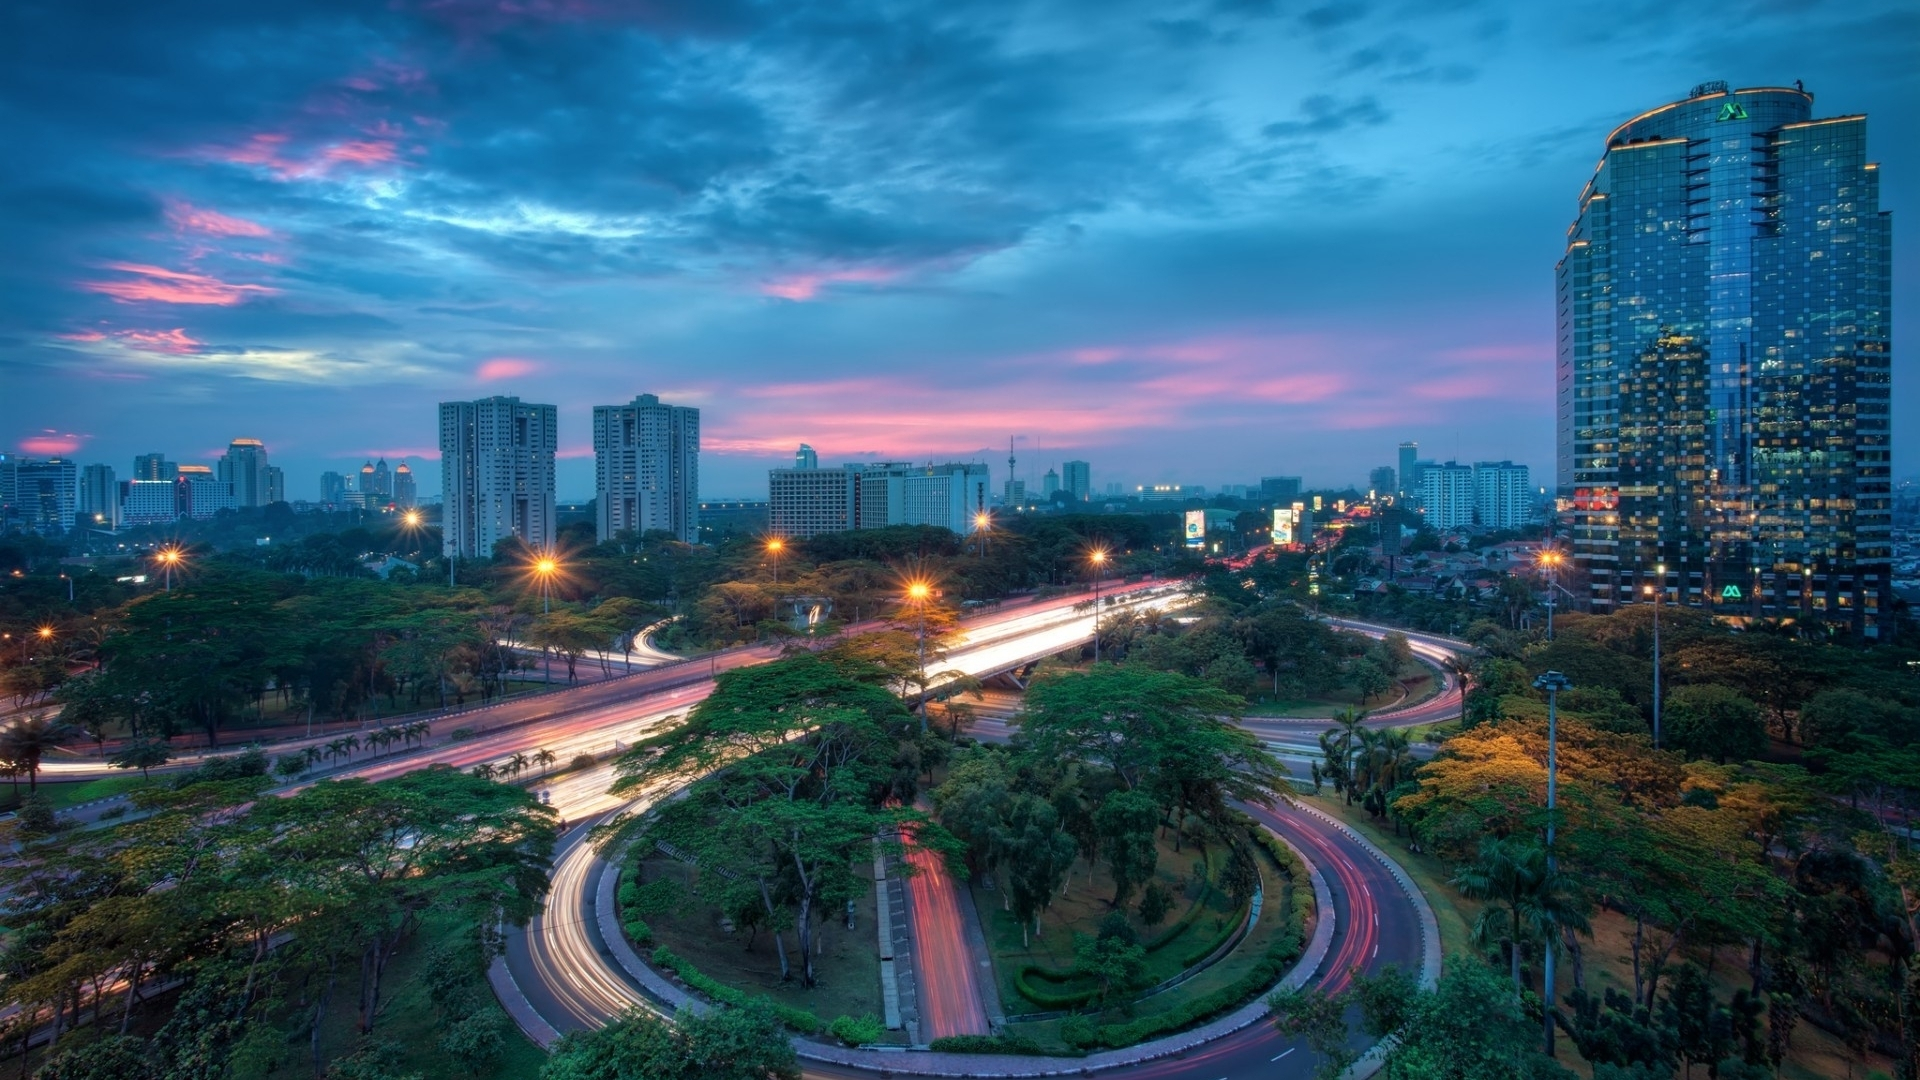 jakarta-indonesia-hd-widescreen-wallpaper